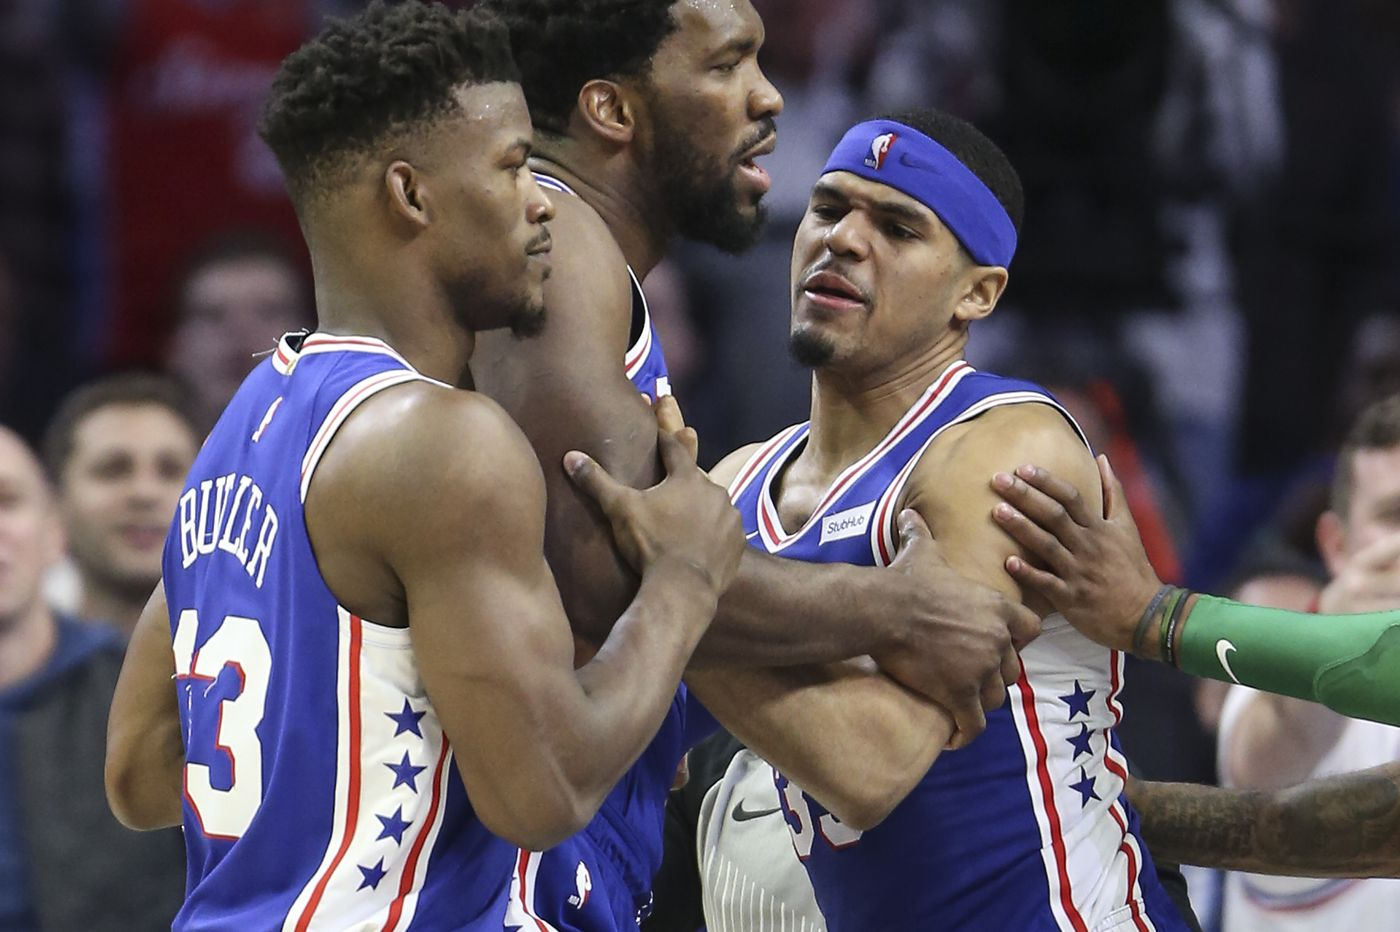 Sixers' Joel Embiid Reacts To Mid-Game Spat With Celtics' Marcus Smart